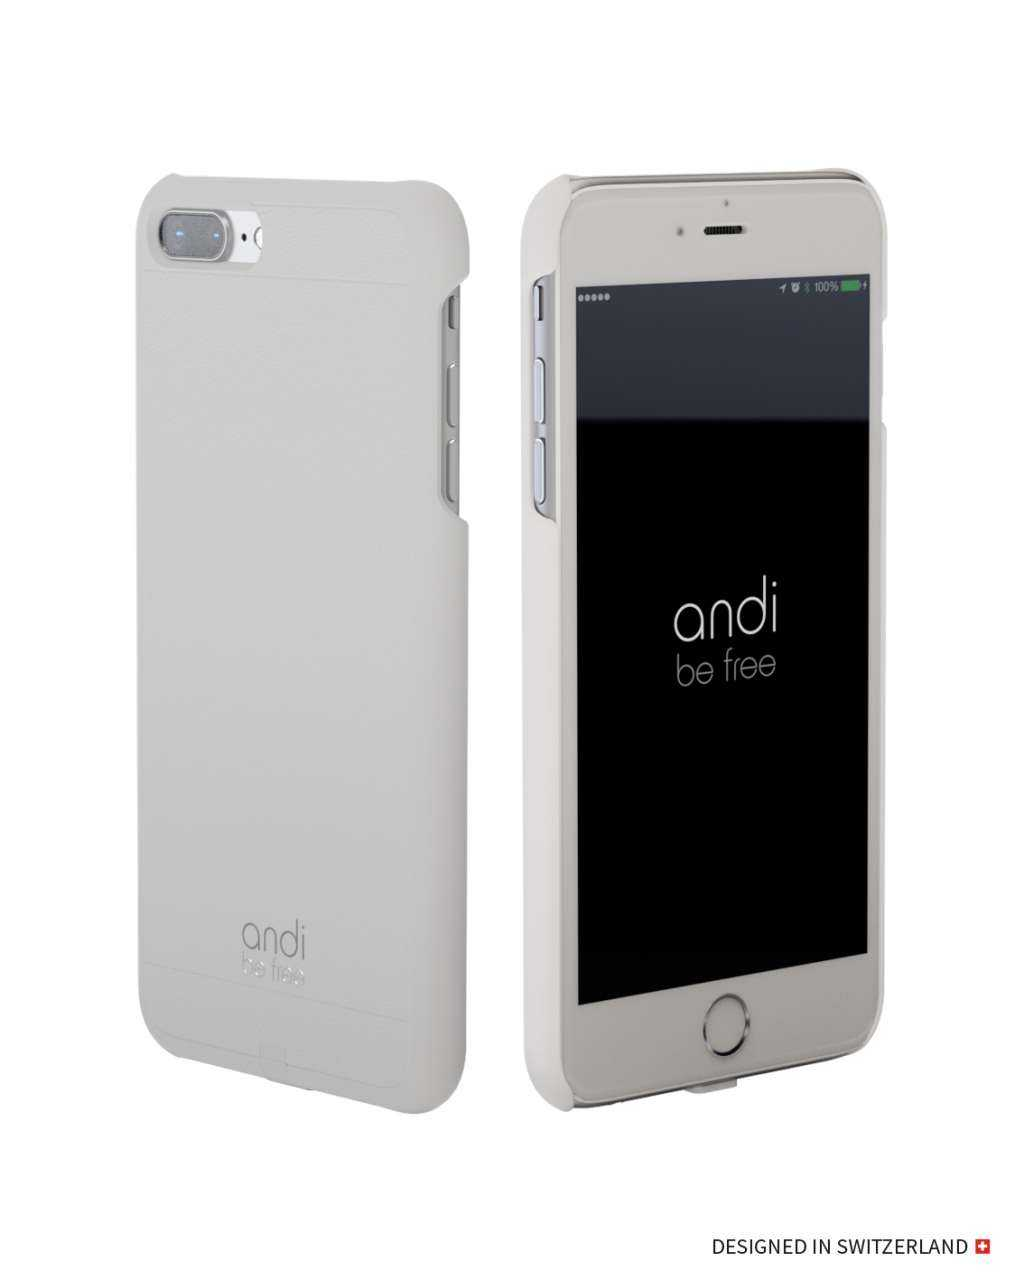 Image of andi be free Apple iPhone 7 Plus Hülle - Wireless Charging Case - weiss